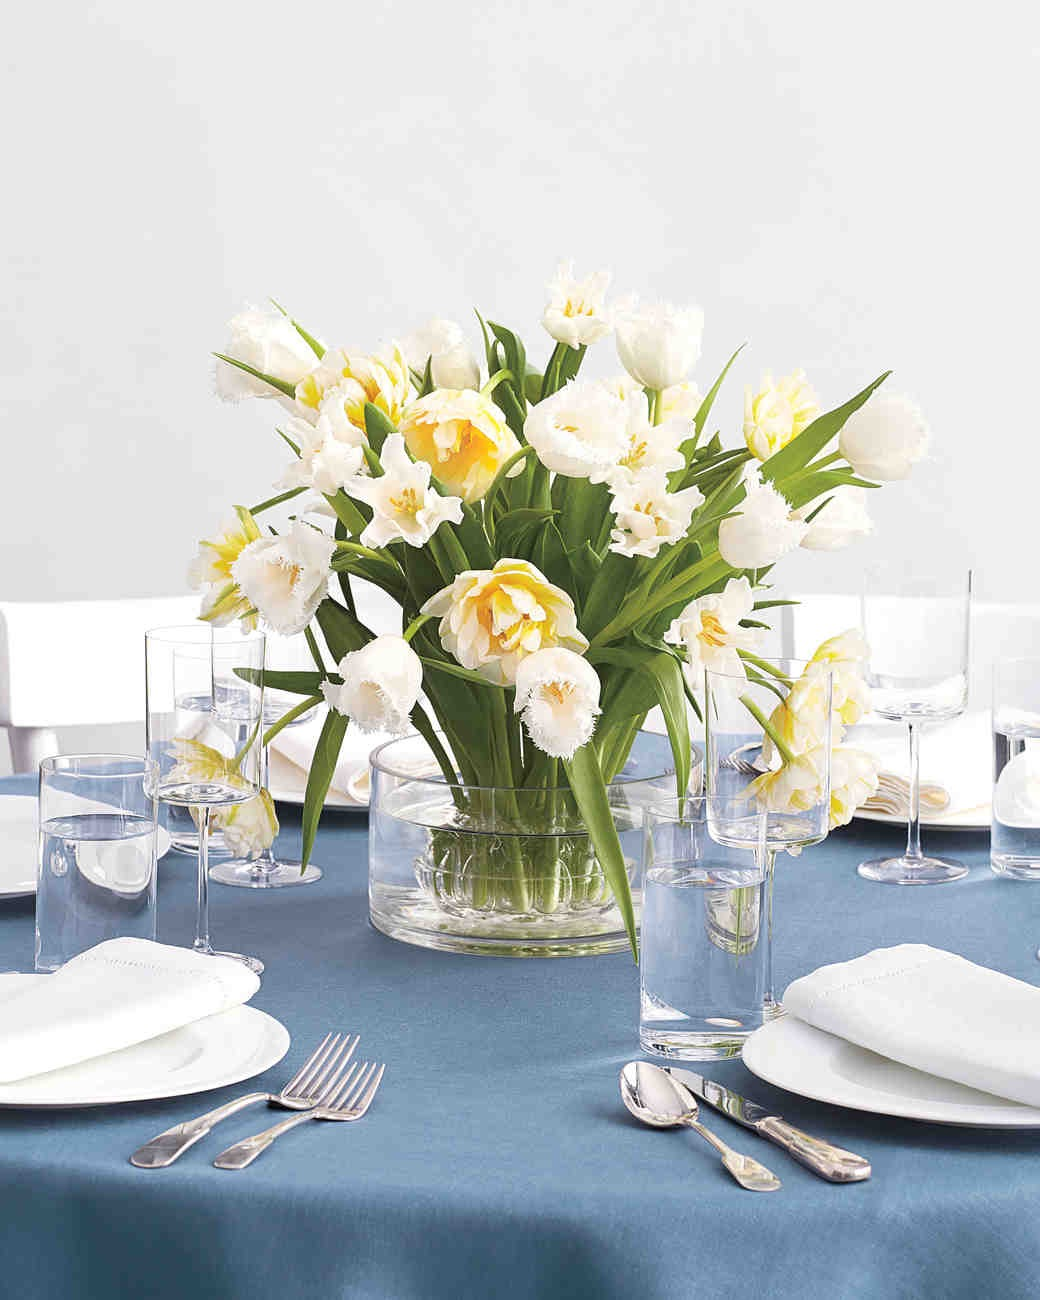 Flowers For Wedding Table Centerpieces: 20 Pretty Summer Wedding Centerpiece Ideas #19316